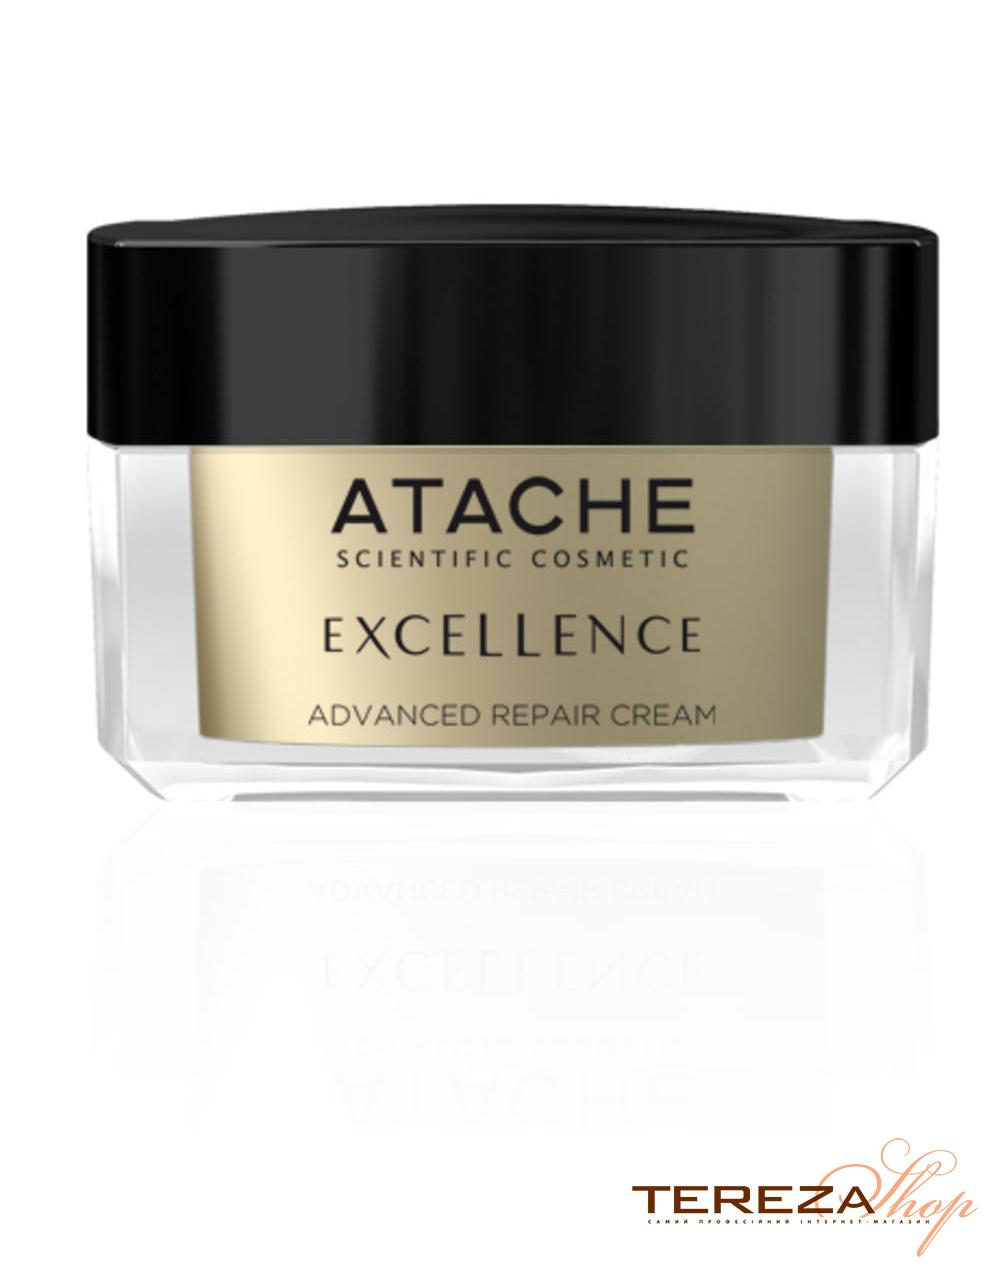 EXCELLENCE ADVANCED REPAIR CREAM ATACHE | Tereza Shop